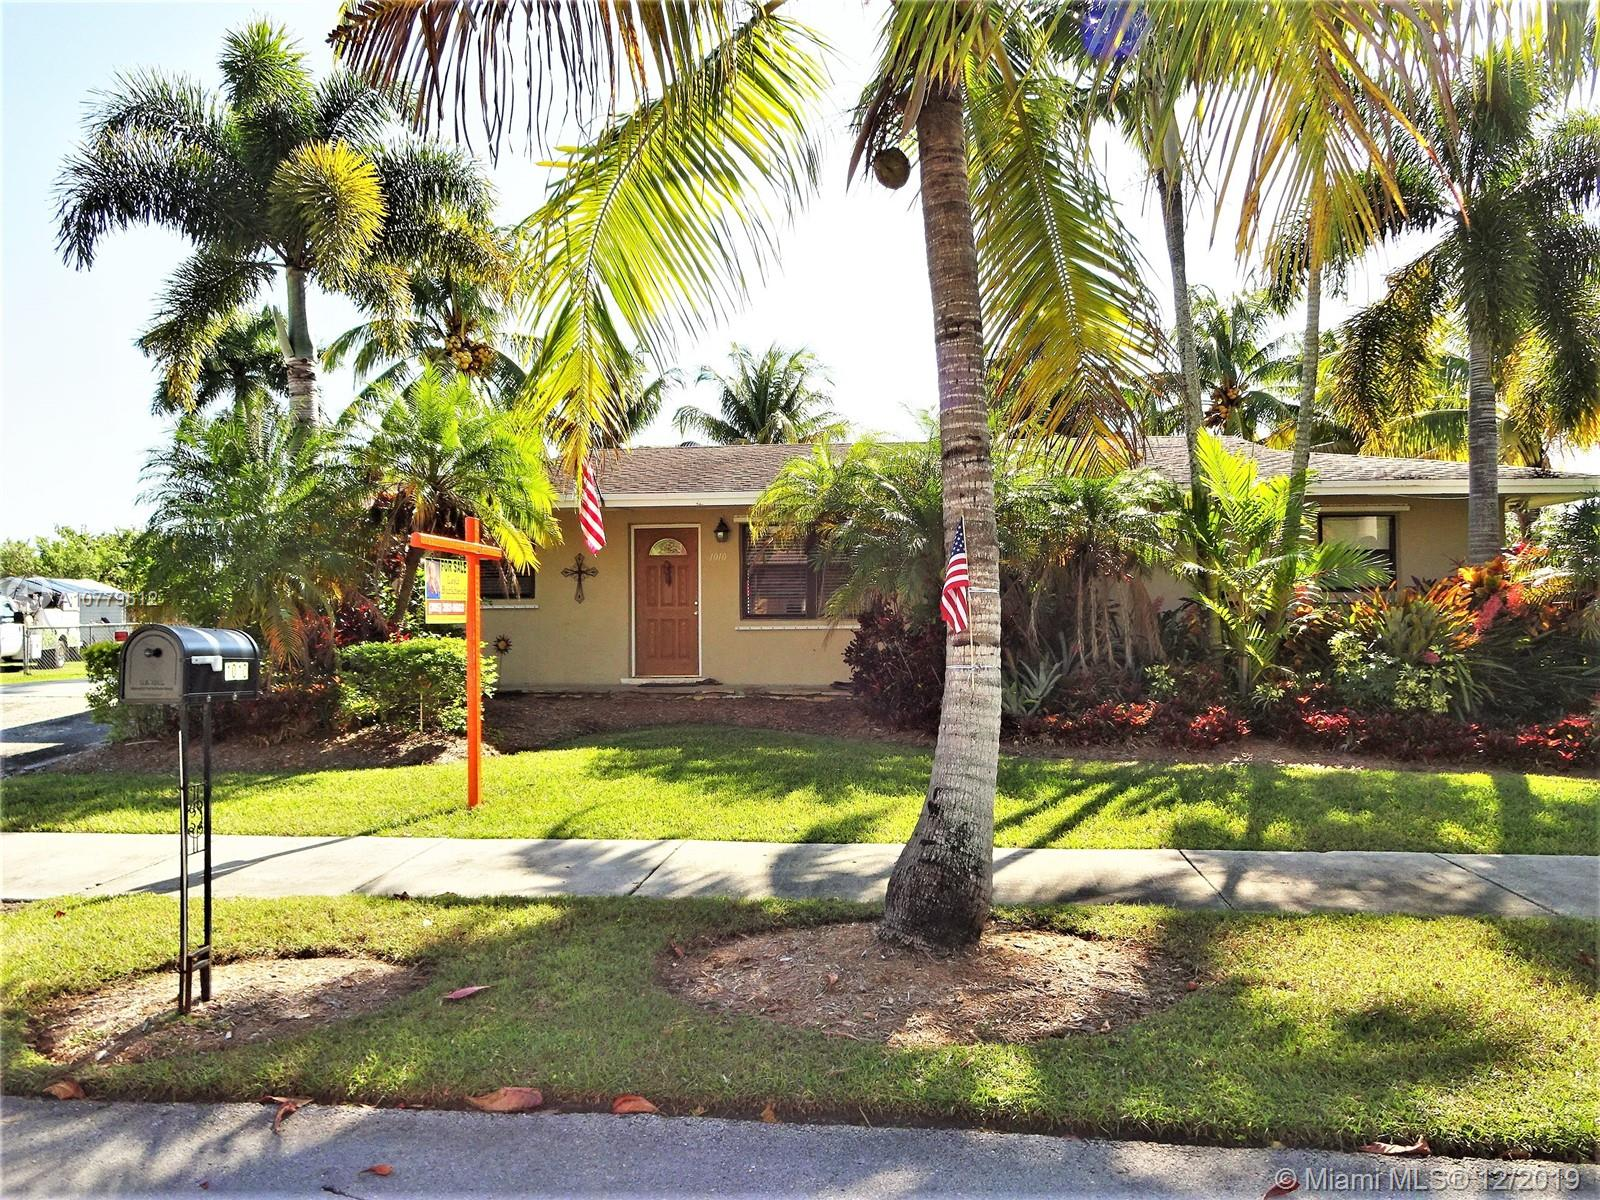 1010 NW 19th St, Homestead, FL 33030 - Homestead, FL real estate listing